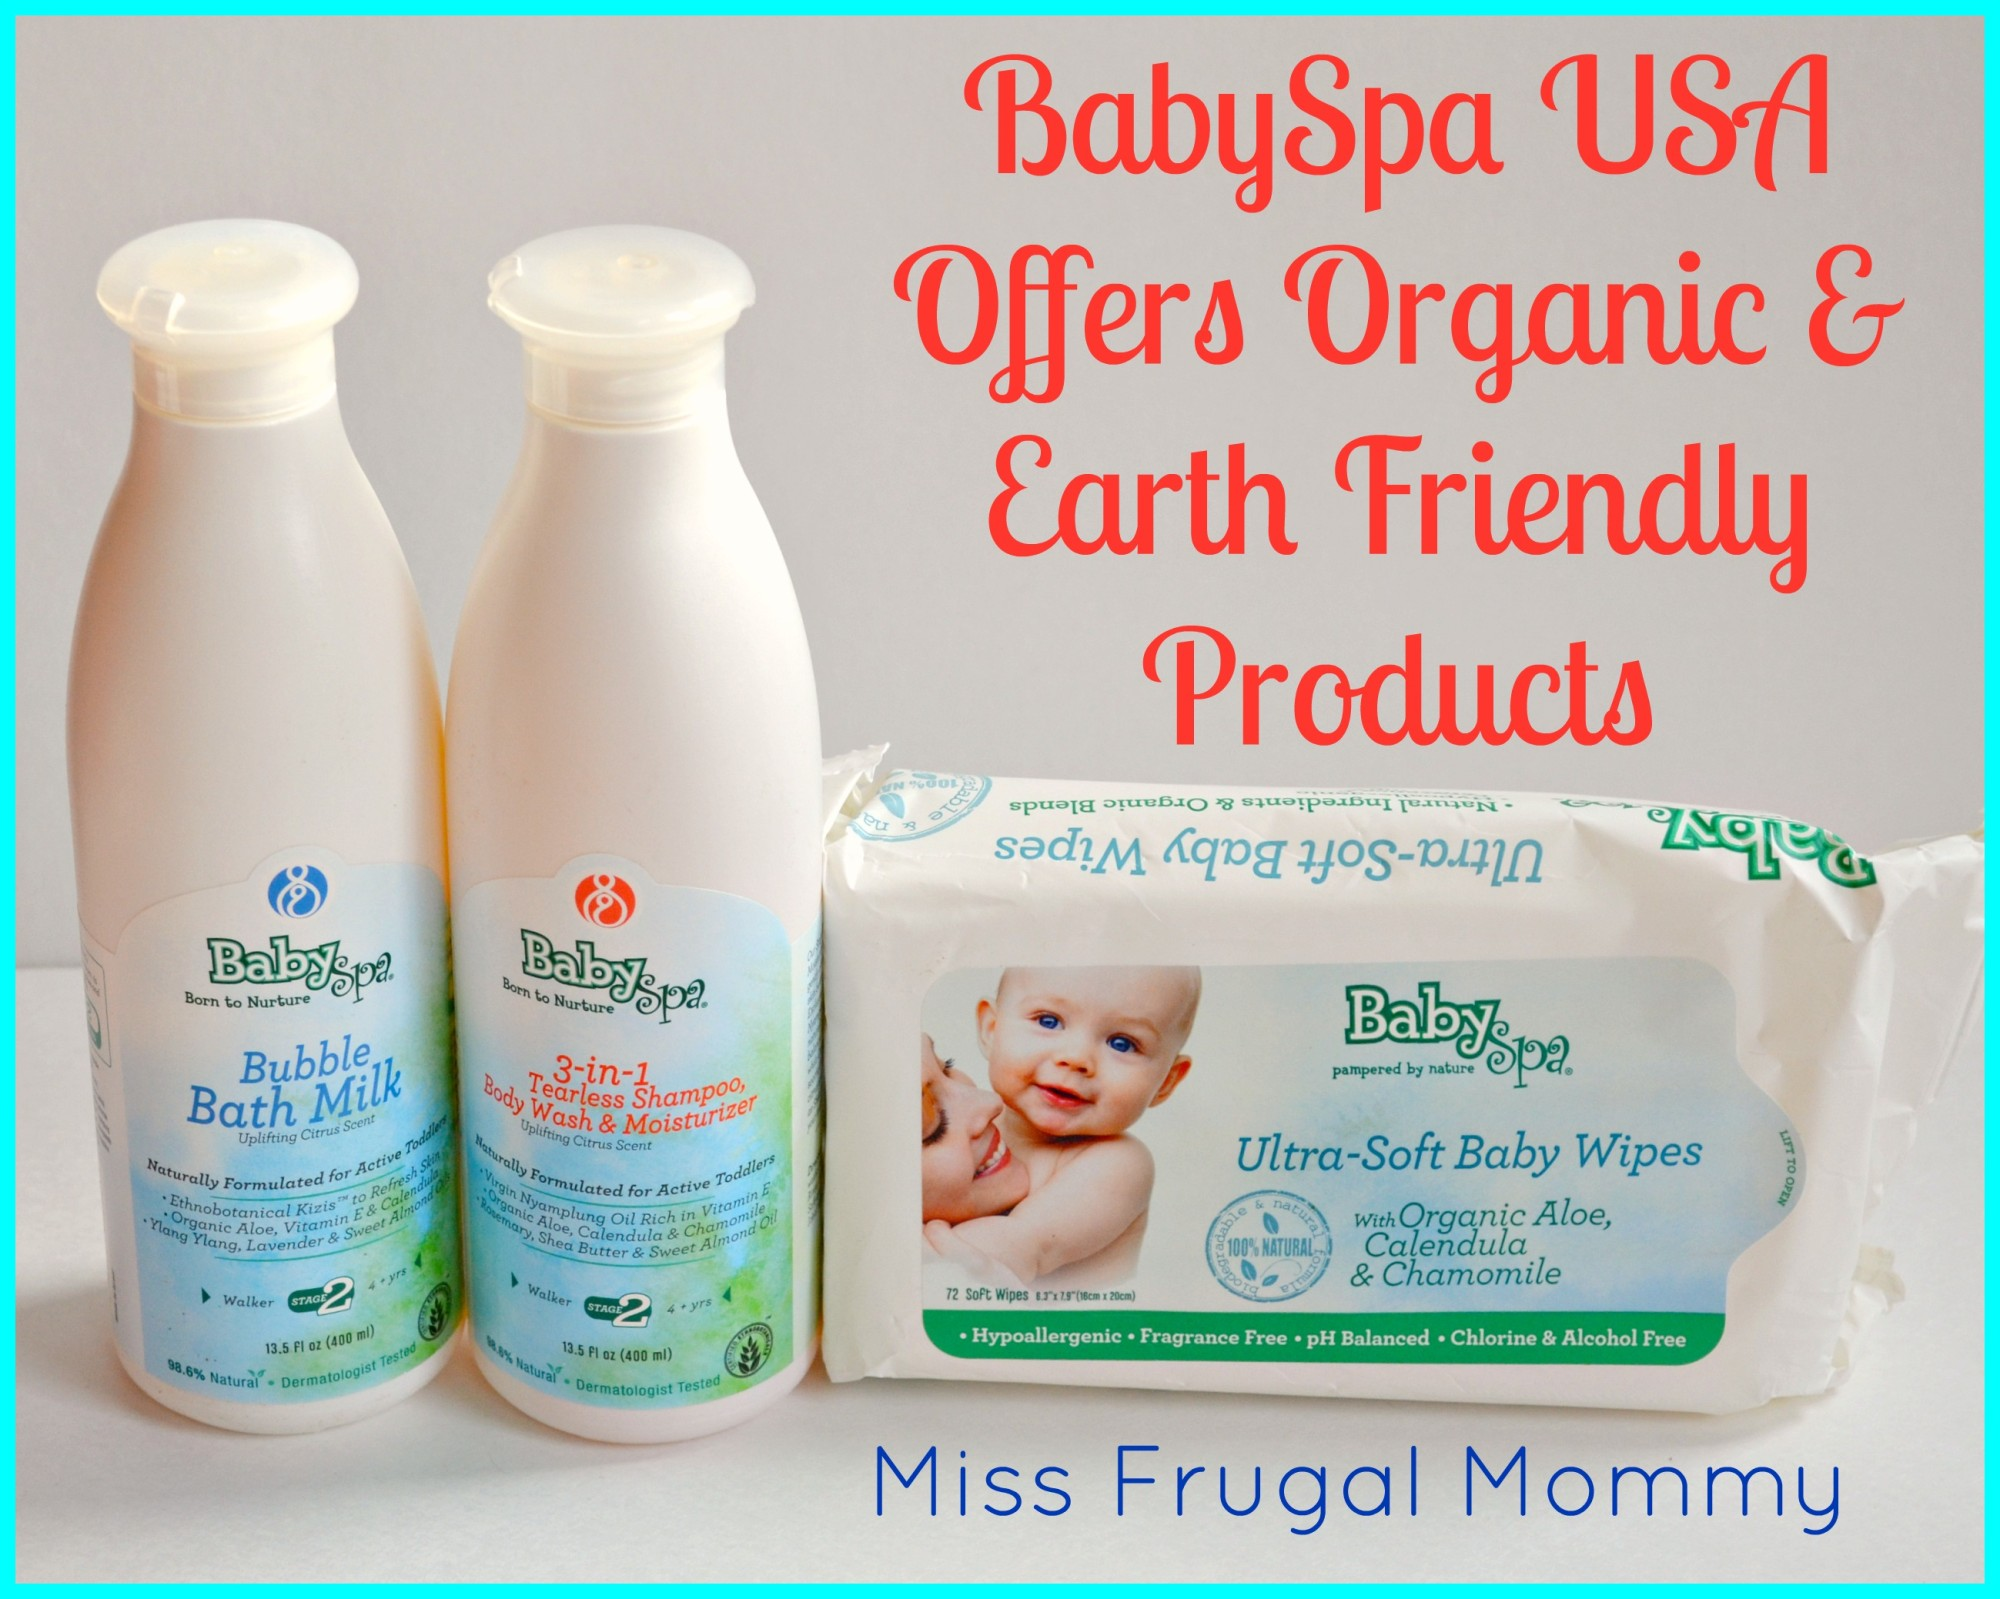 BabySpa USA Offers Organic & Earth Friendly Products